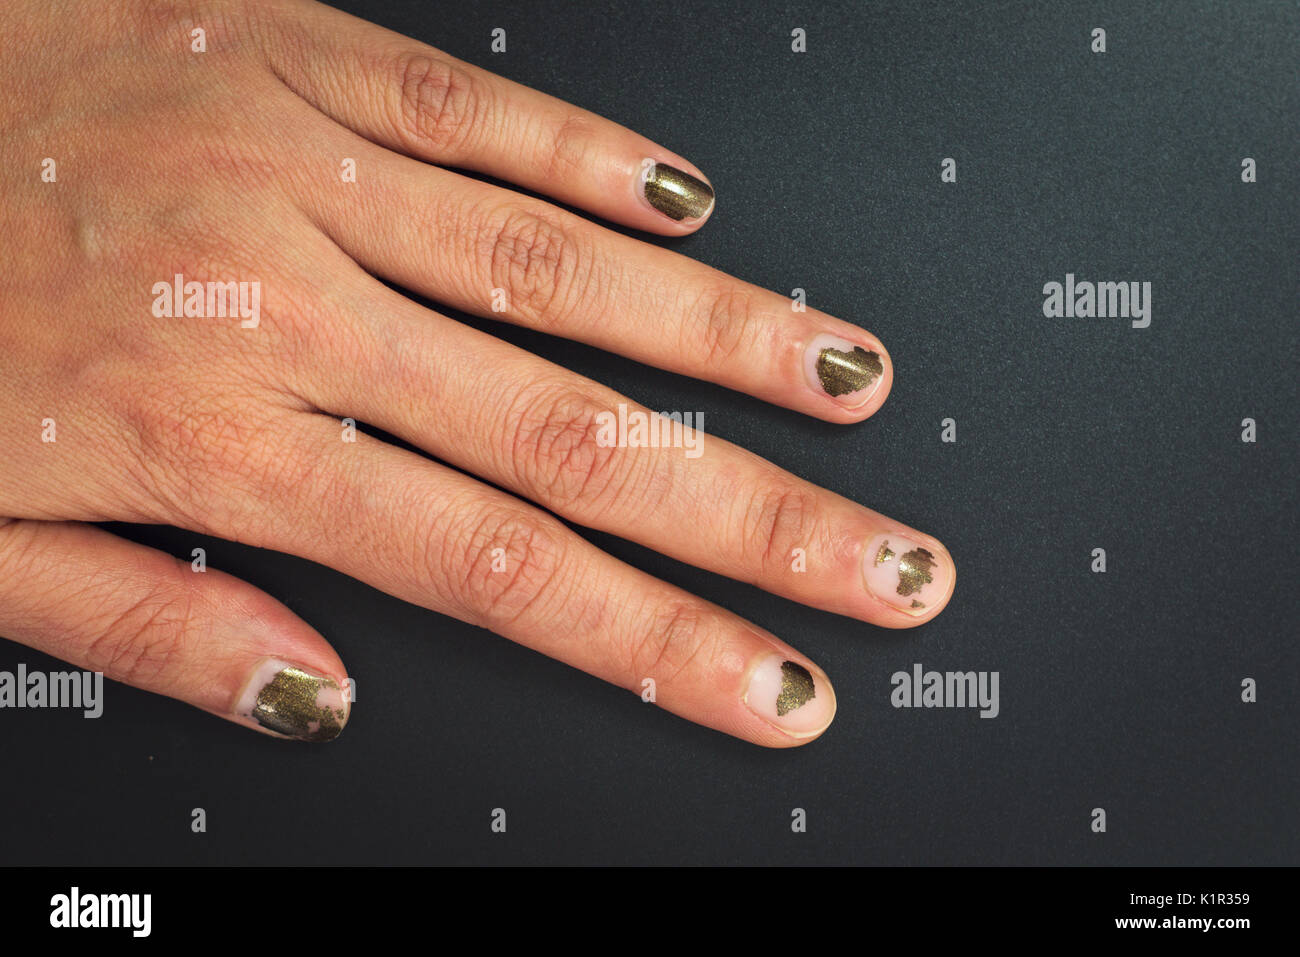 Glitter dark color Nails polish scratched on black background with